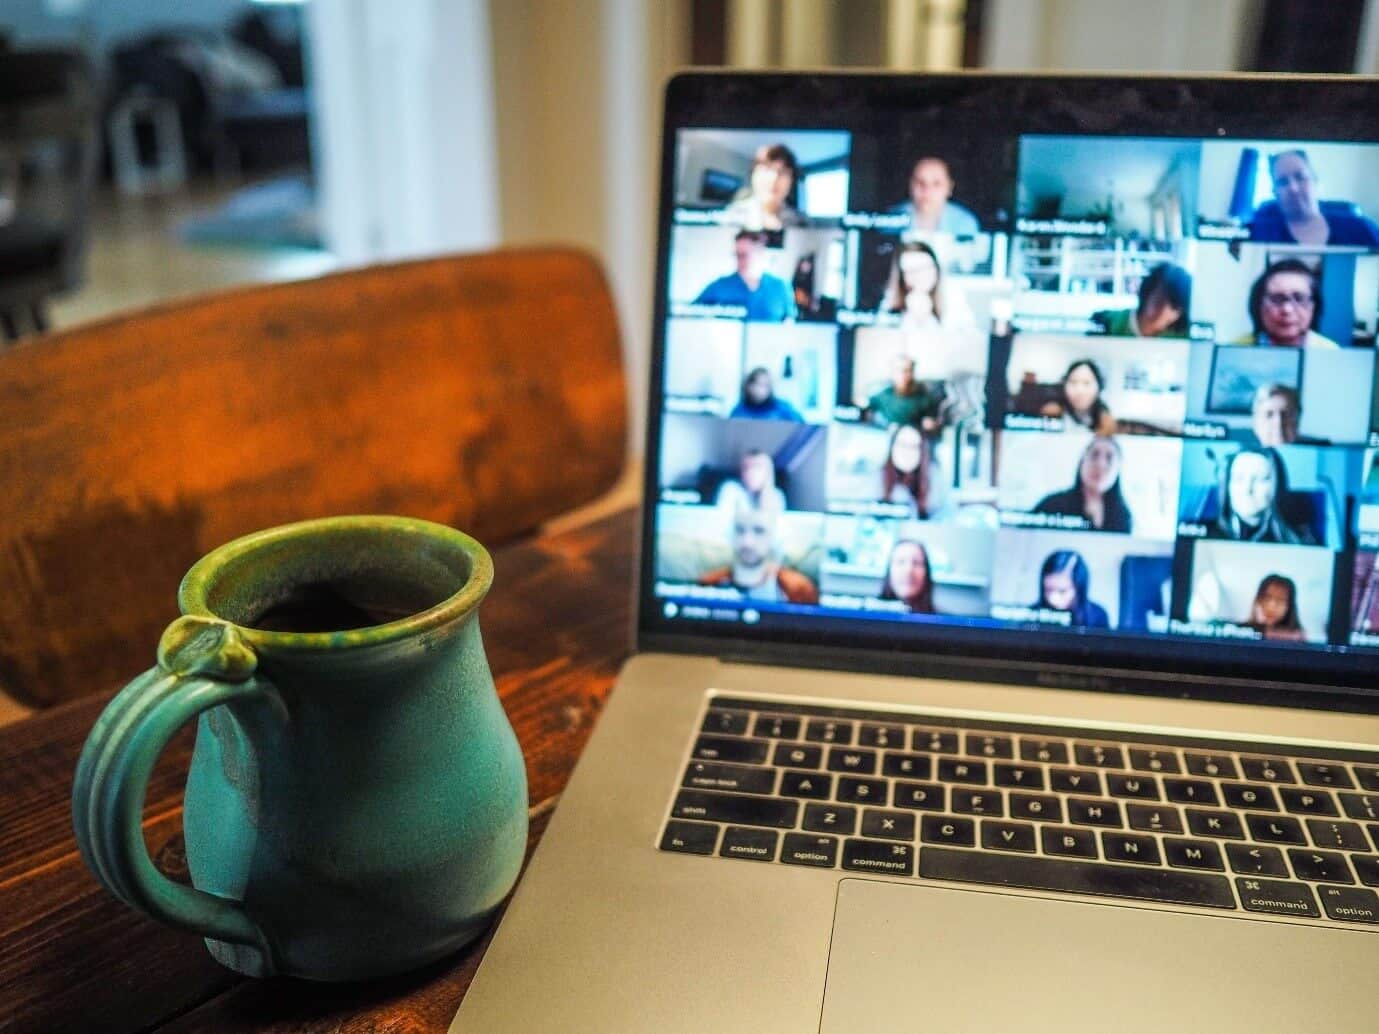 content/en-ae/images/repository/isc/2020/videoconferencing1.jpg